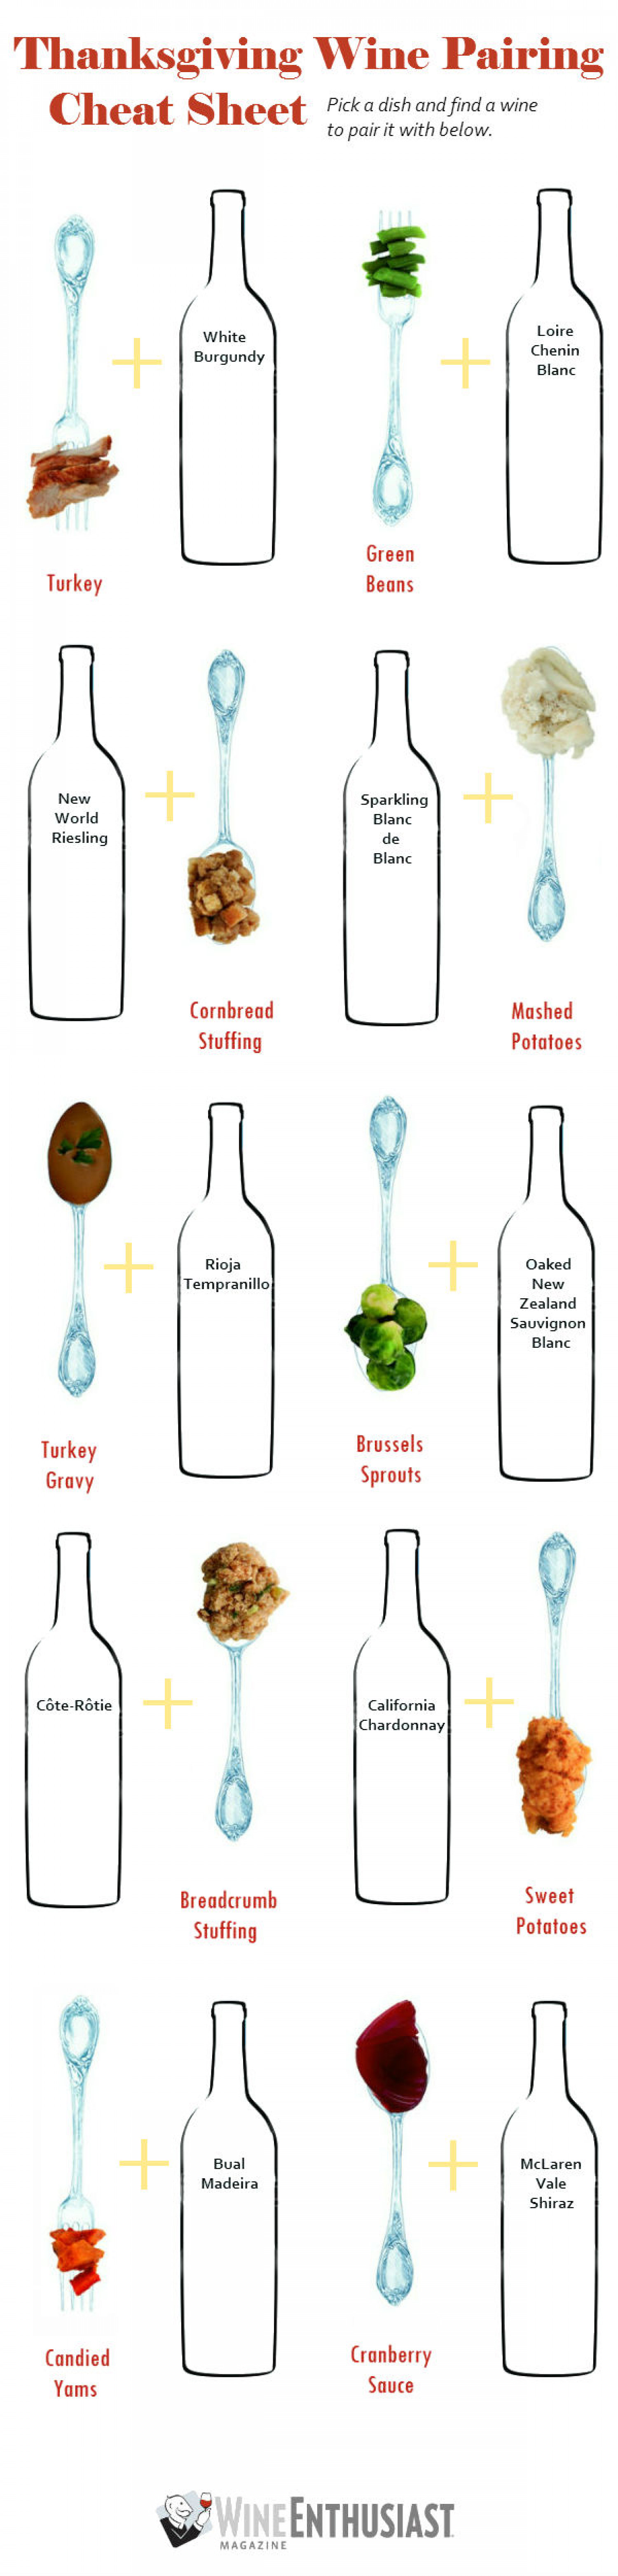 Thanksgiving Wine Pairing Cheat Sheet Infographic